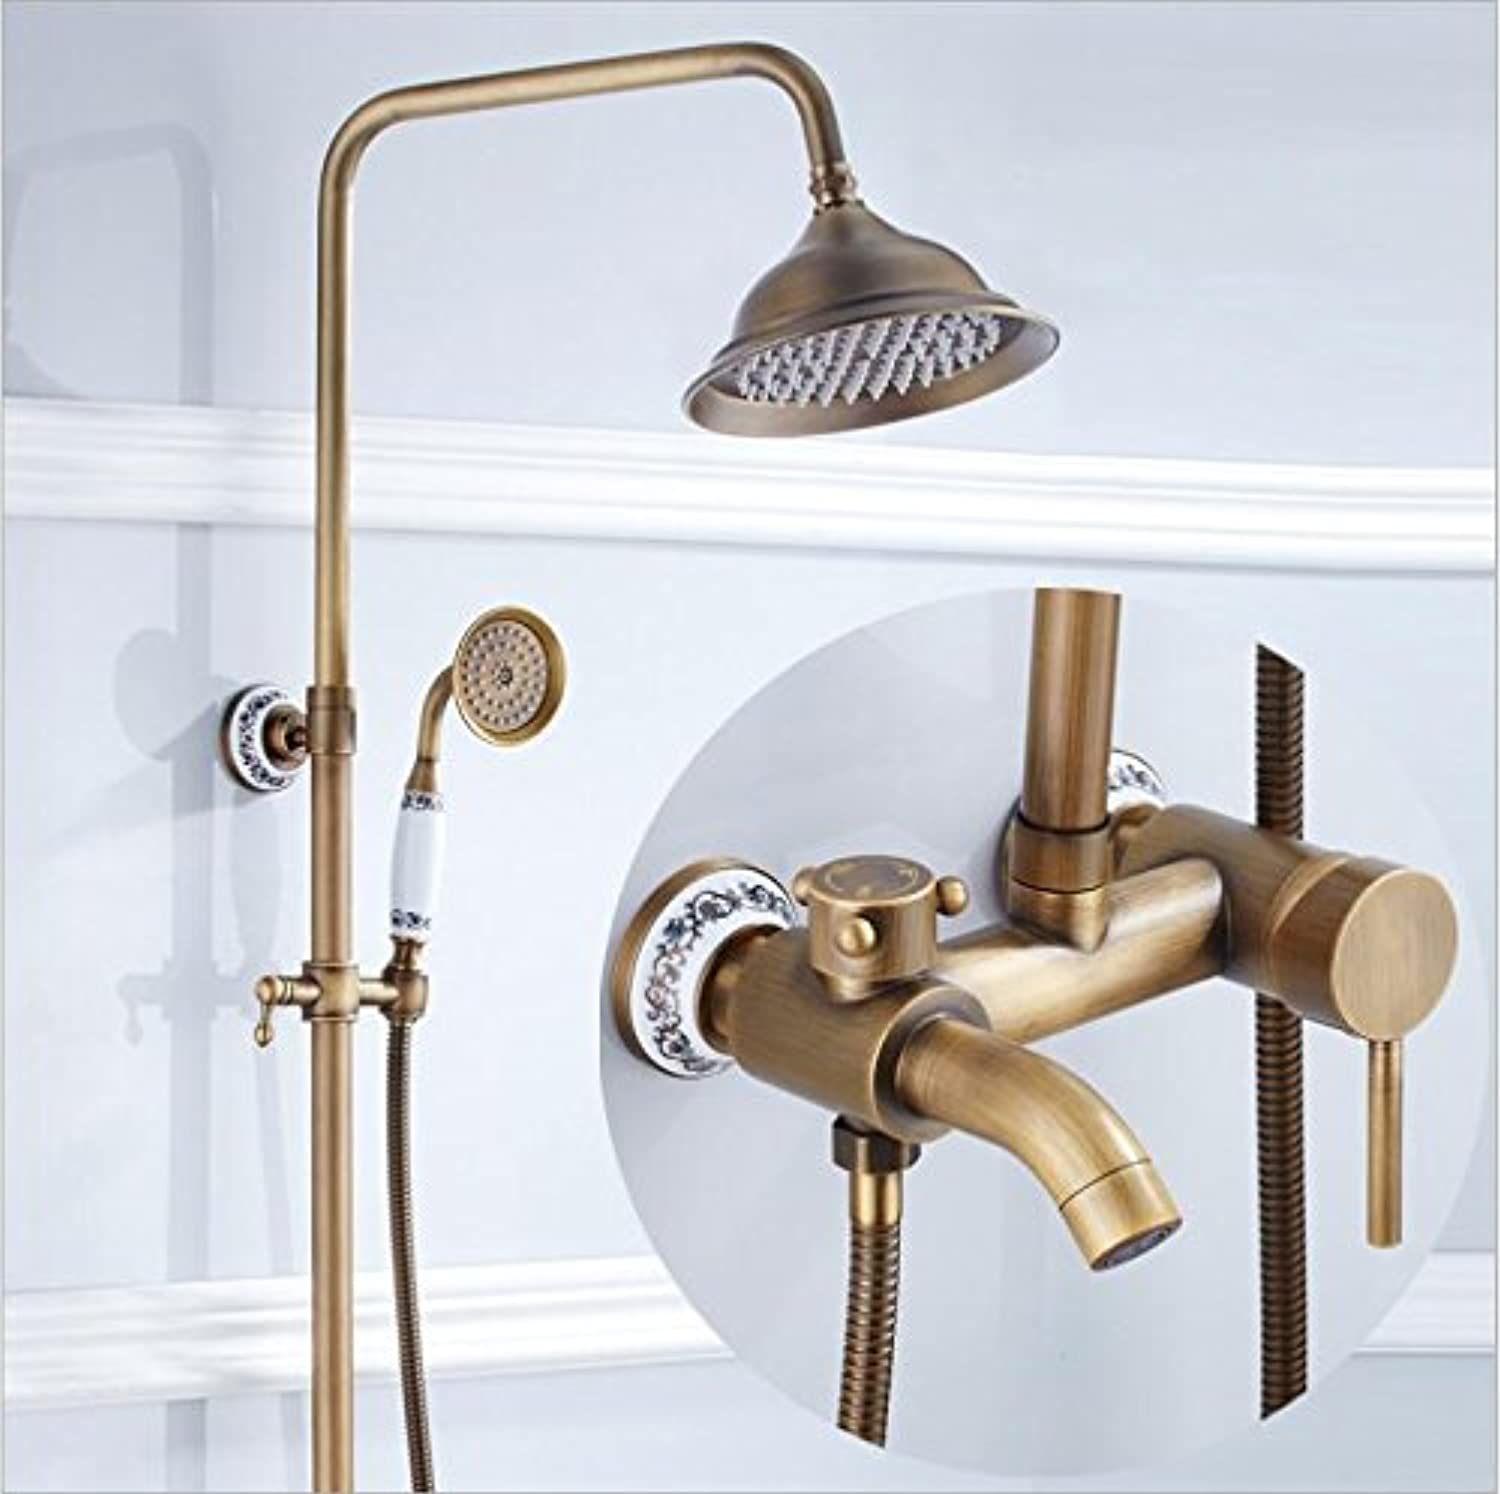 Free Shipping Luxury Antique Brass Rainfall Shower Set Faucet Tub Mixer Tap Hand held Shower Luxury Bath and shower faucet